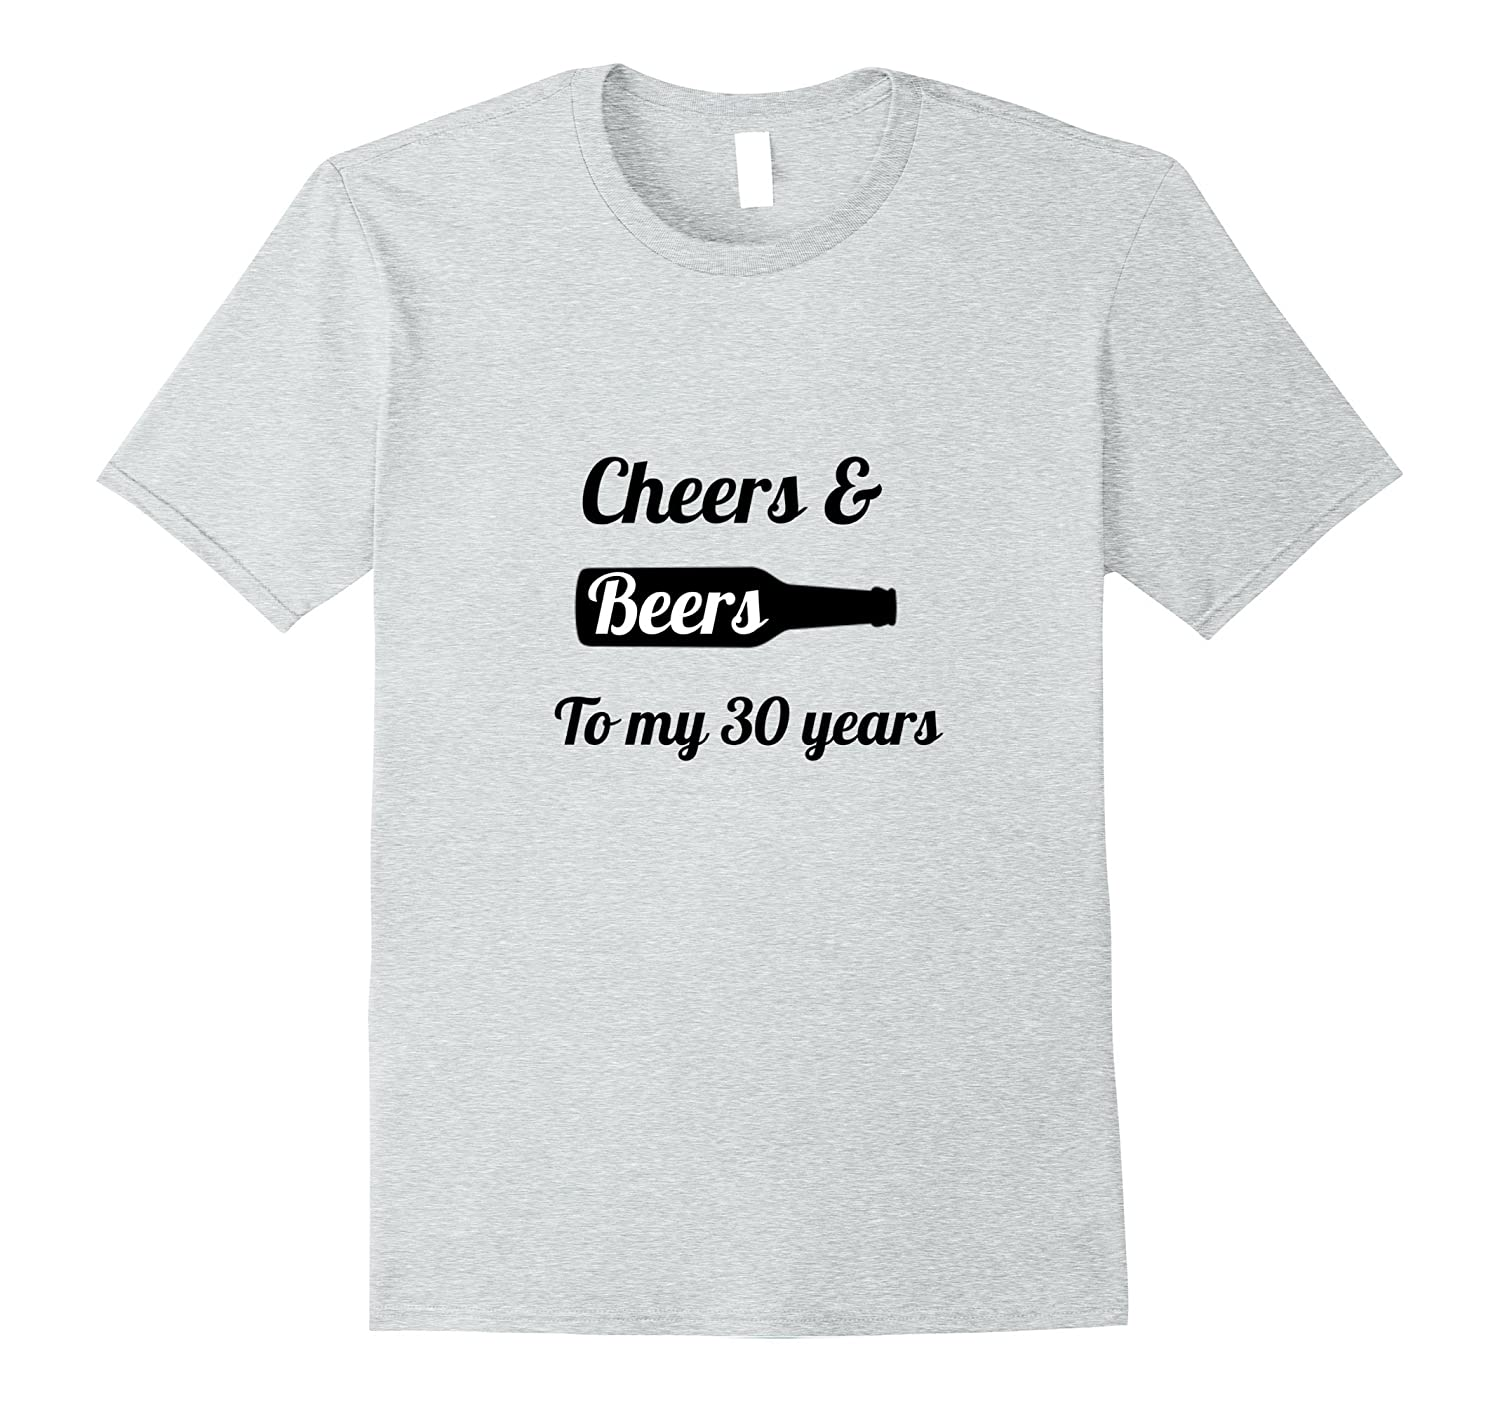 1987 – Cheers and Beers to 30 Years funny awesome t-shirt